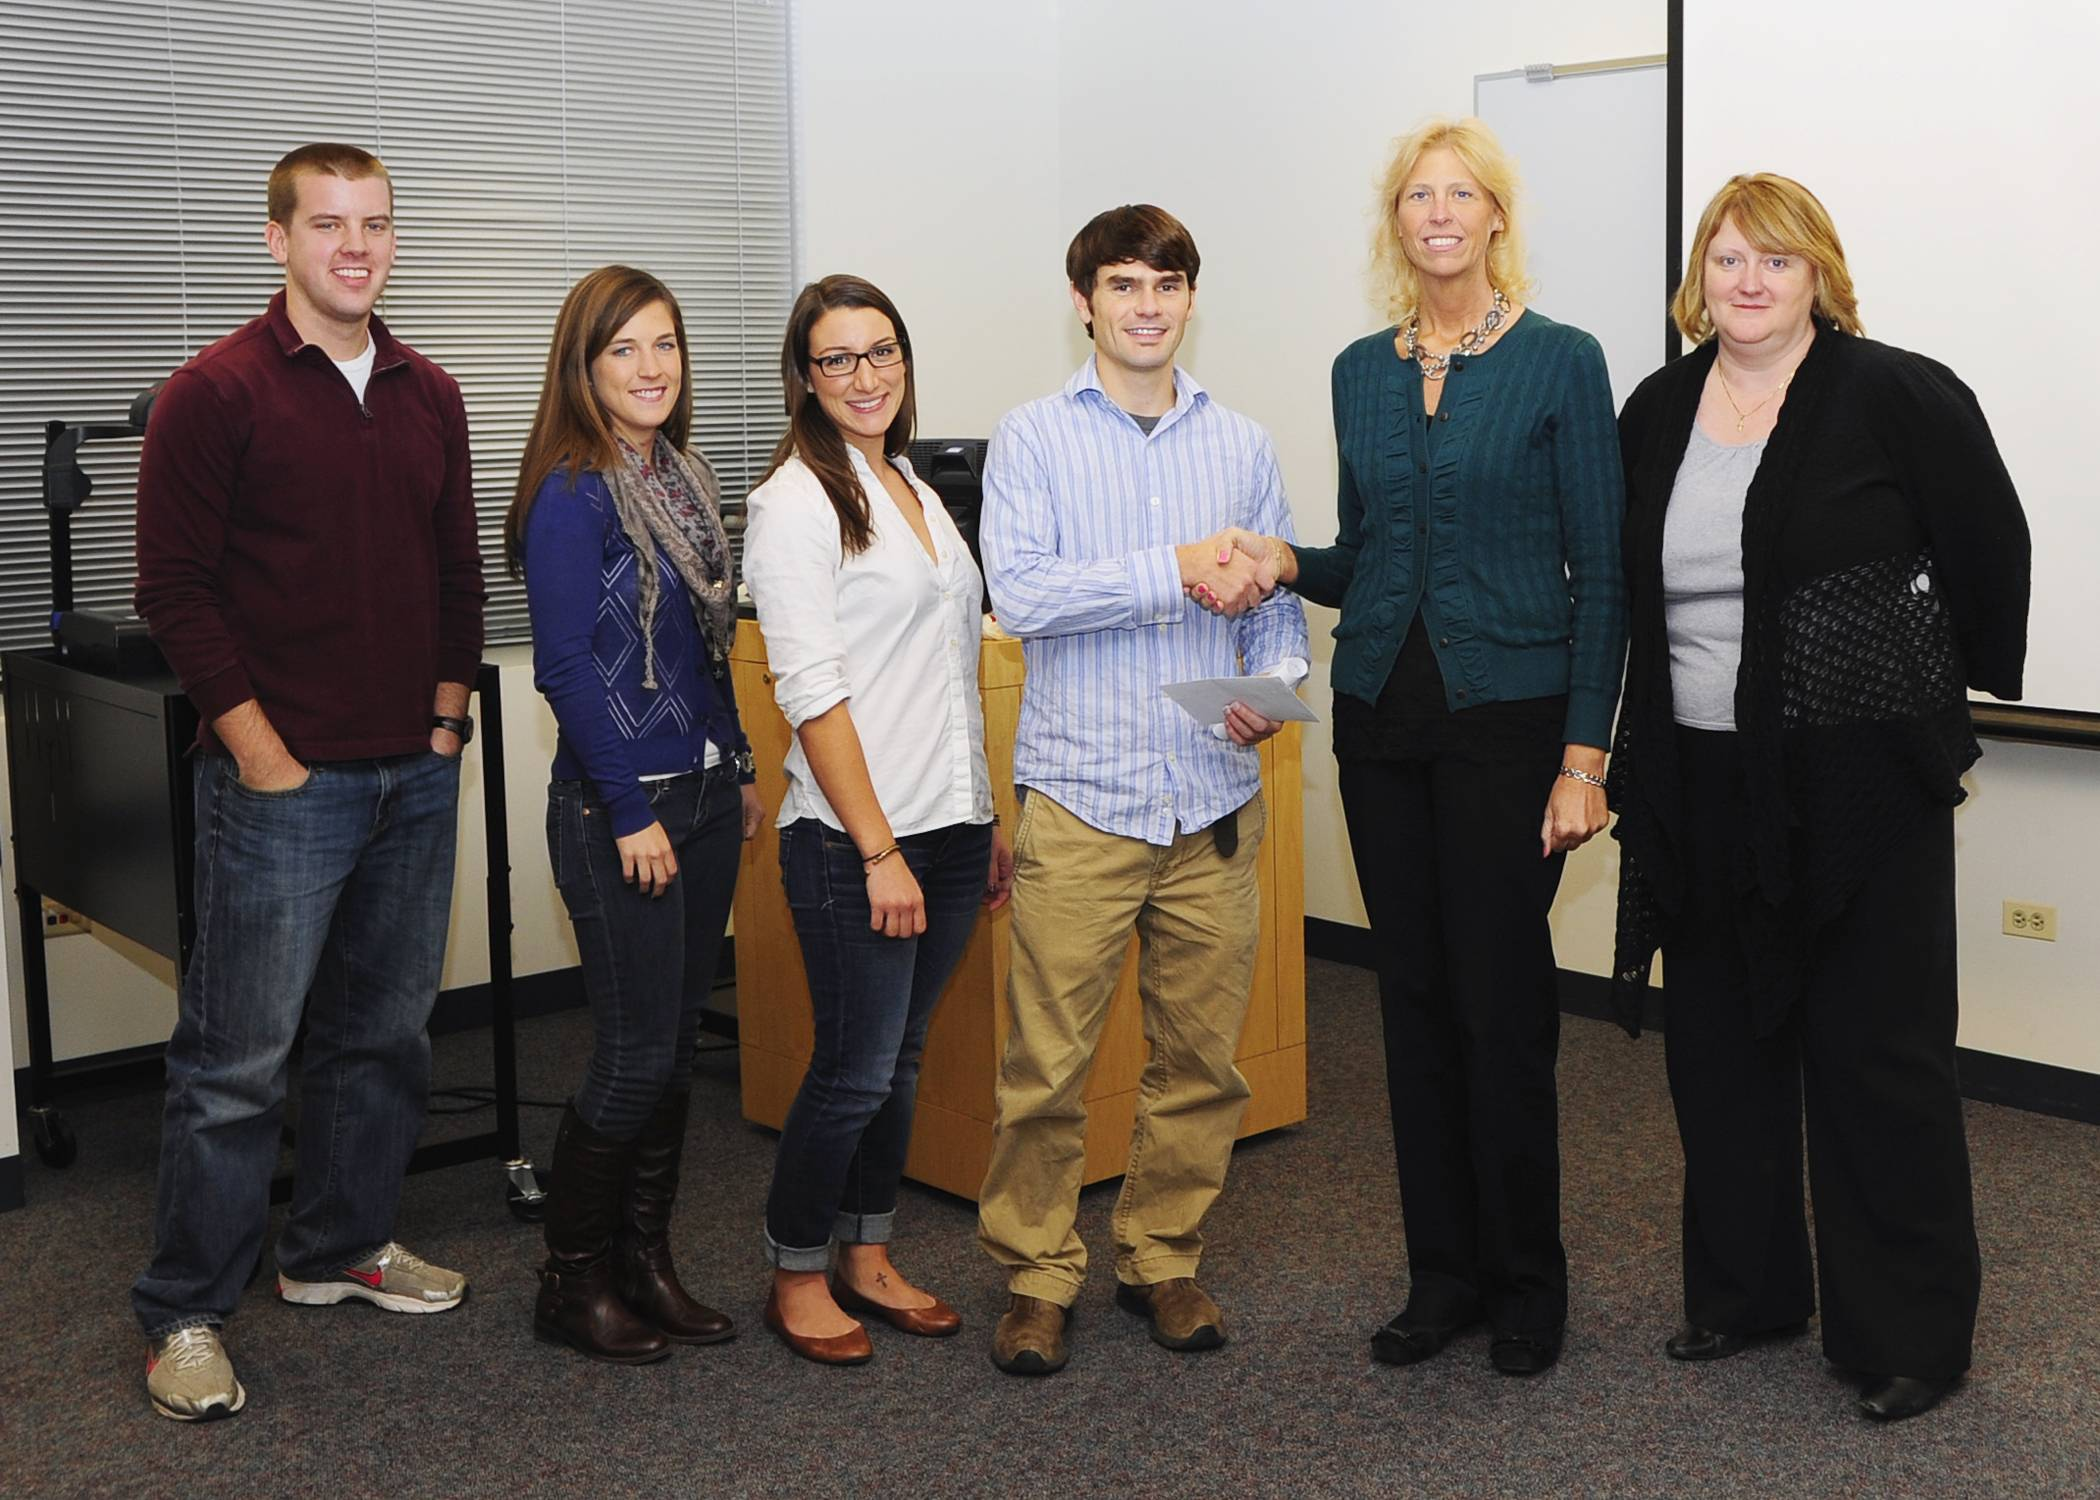 Members of the Sports Medicine Club at Midwestern University present their donation to representatives from the Sharing Connections Furniture Bank.